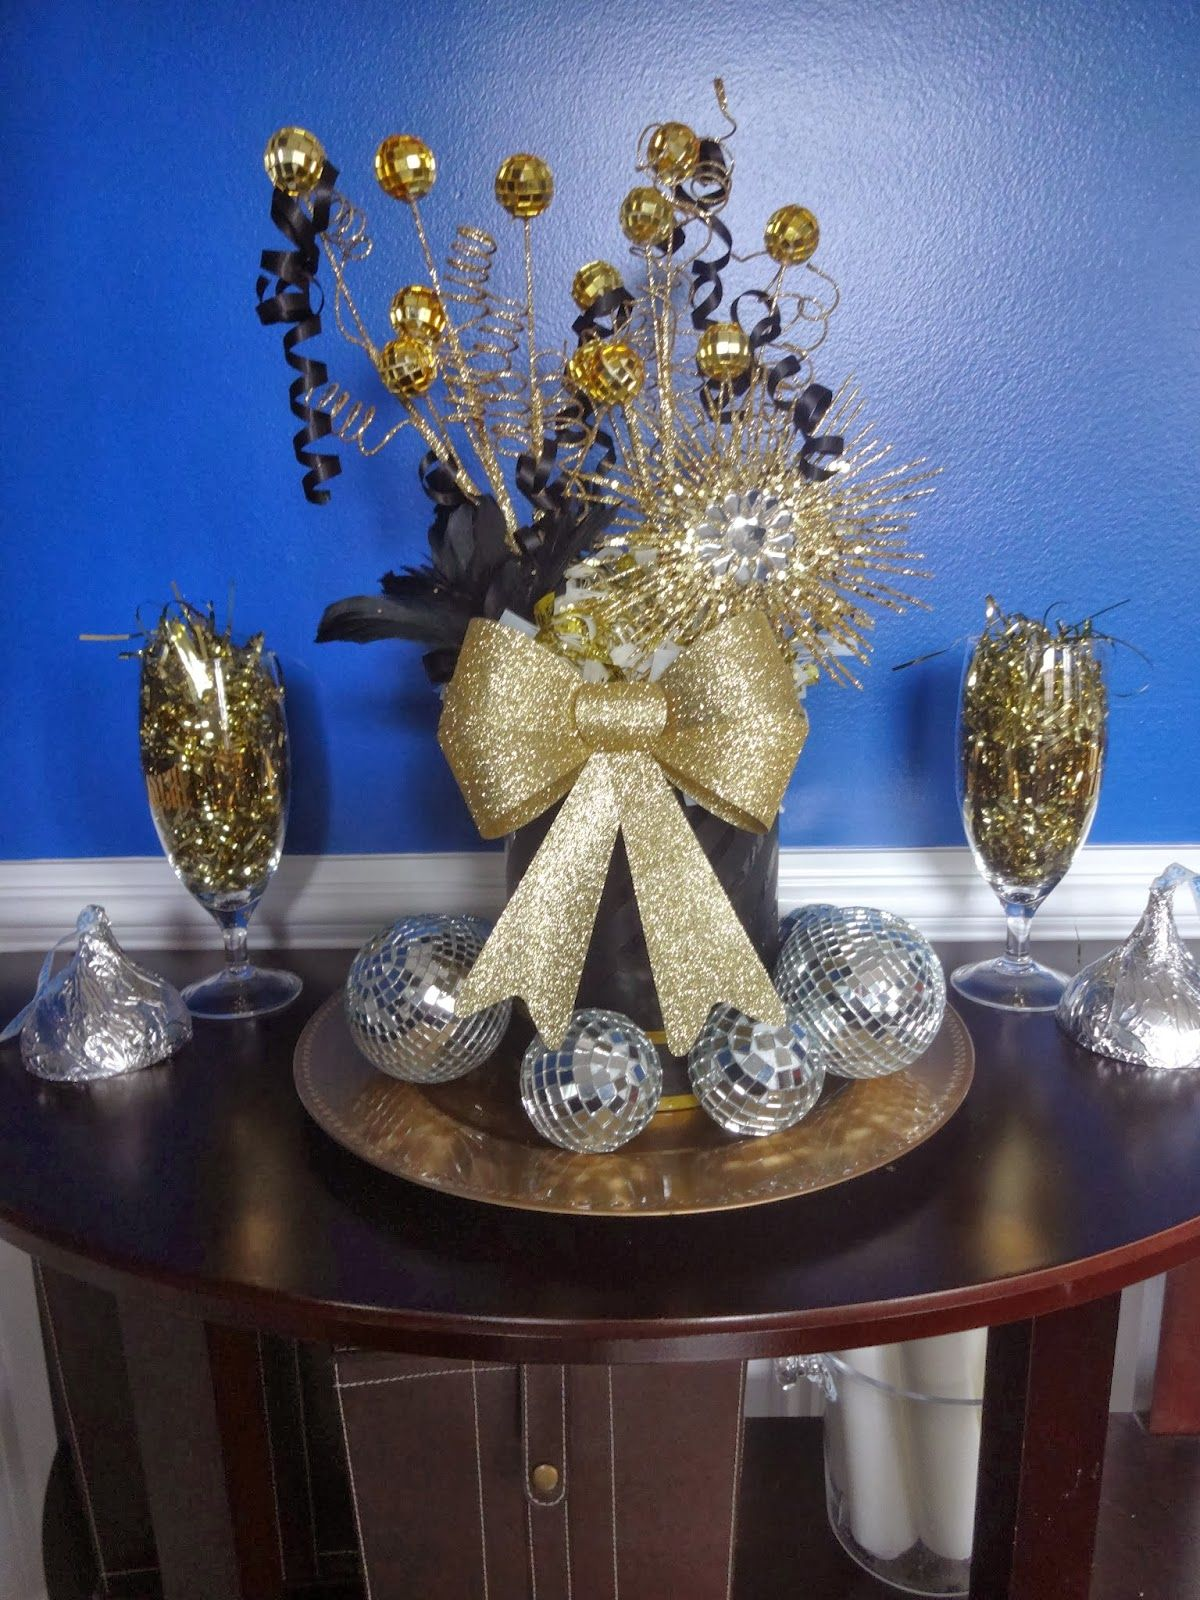 : New Years Eve Decor | New years eve decorations, New ...